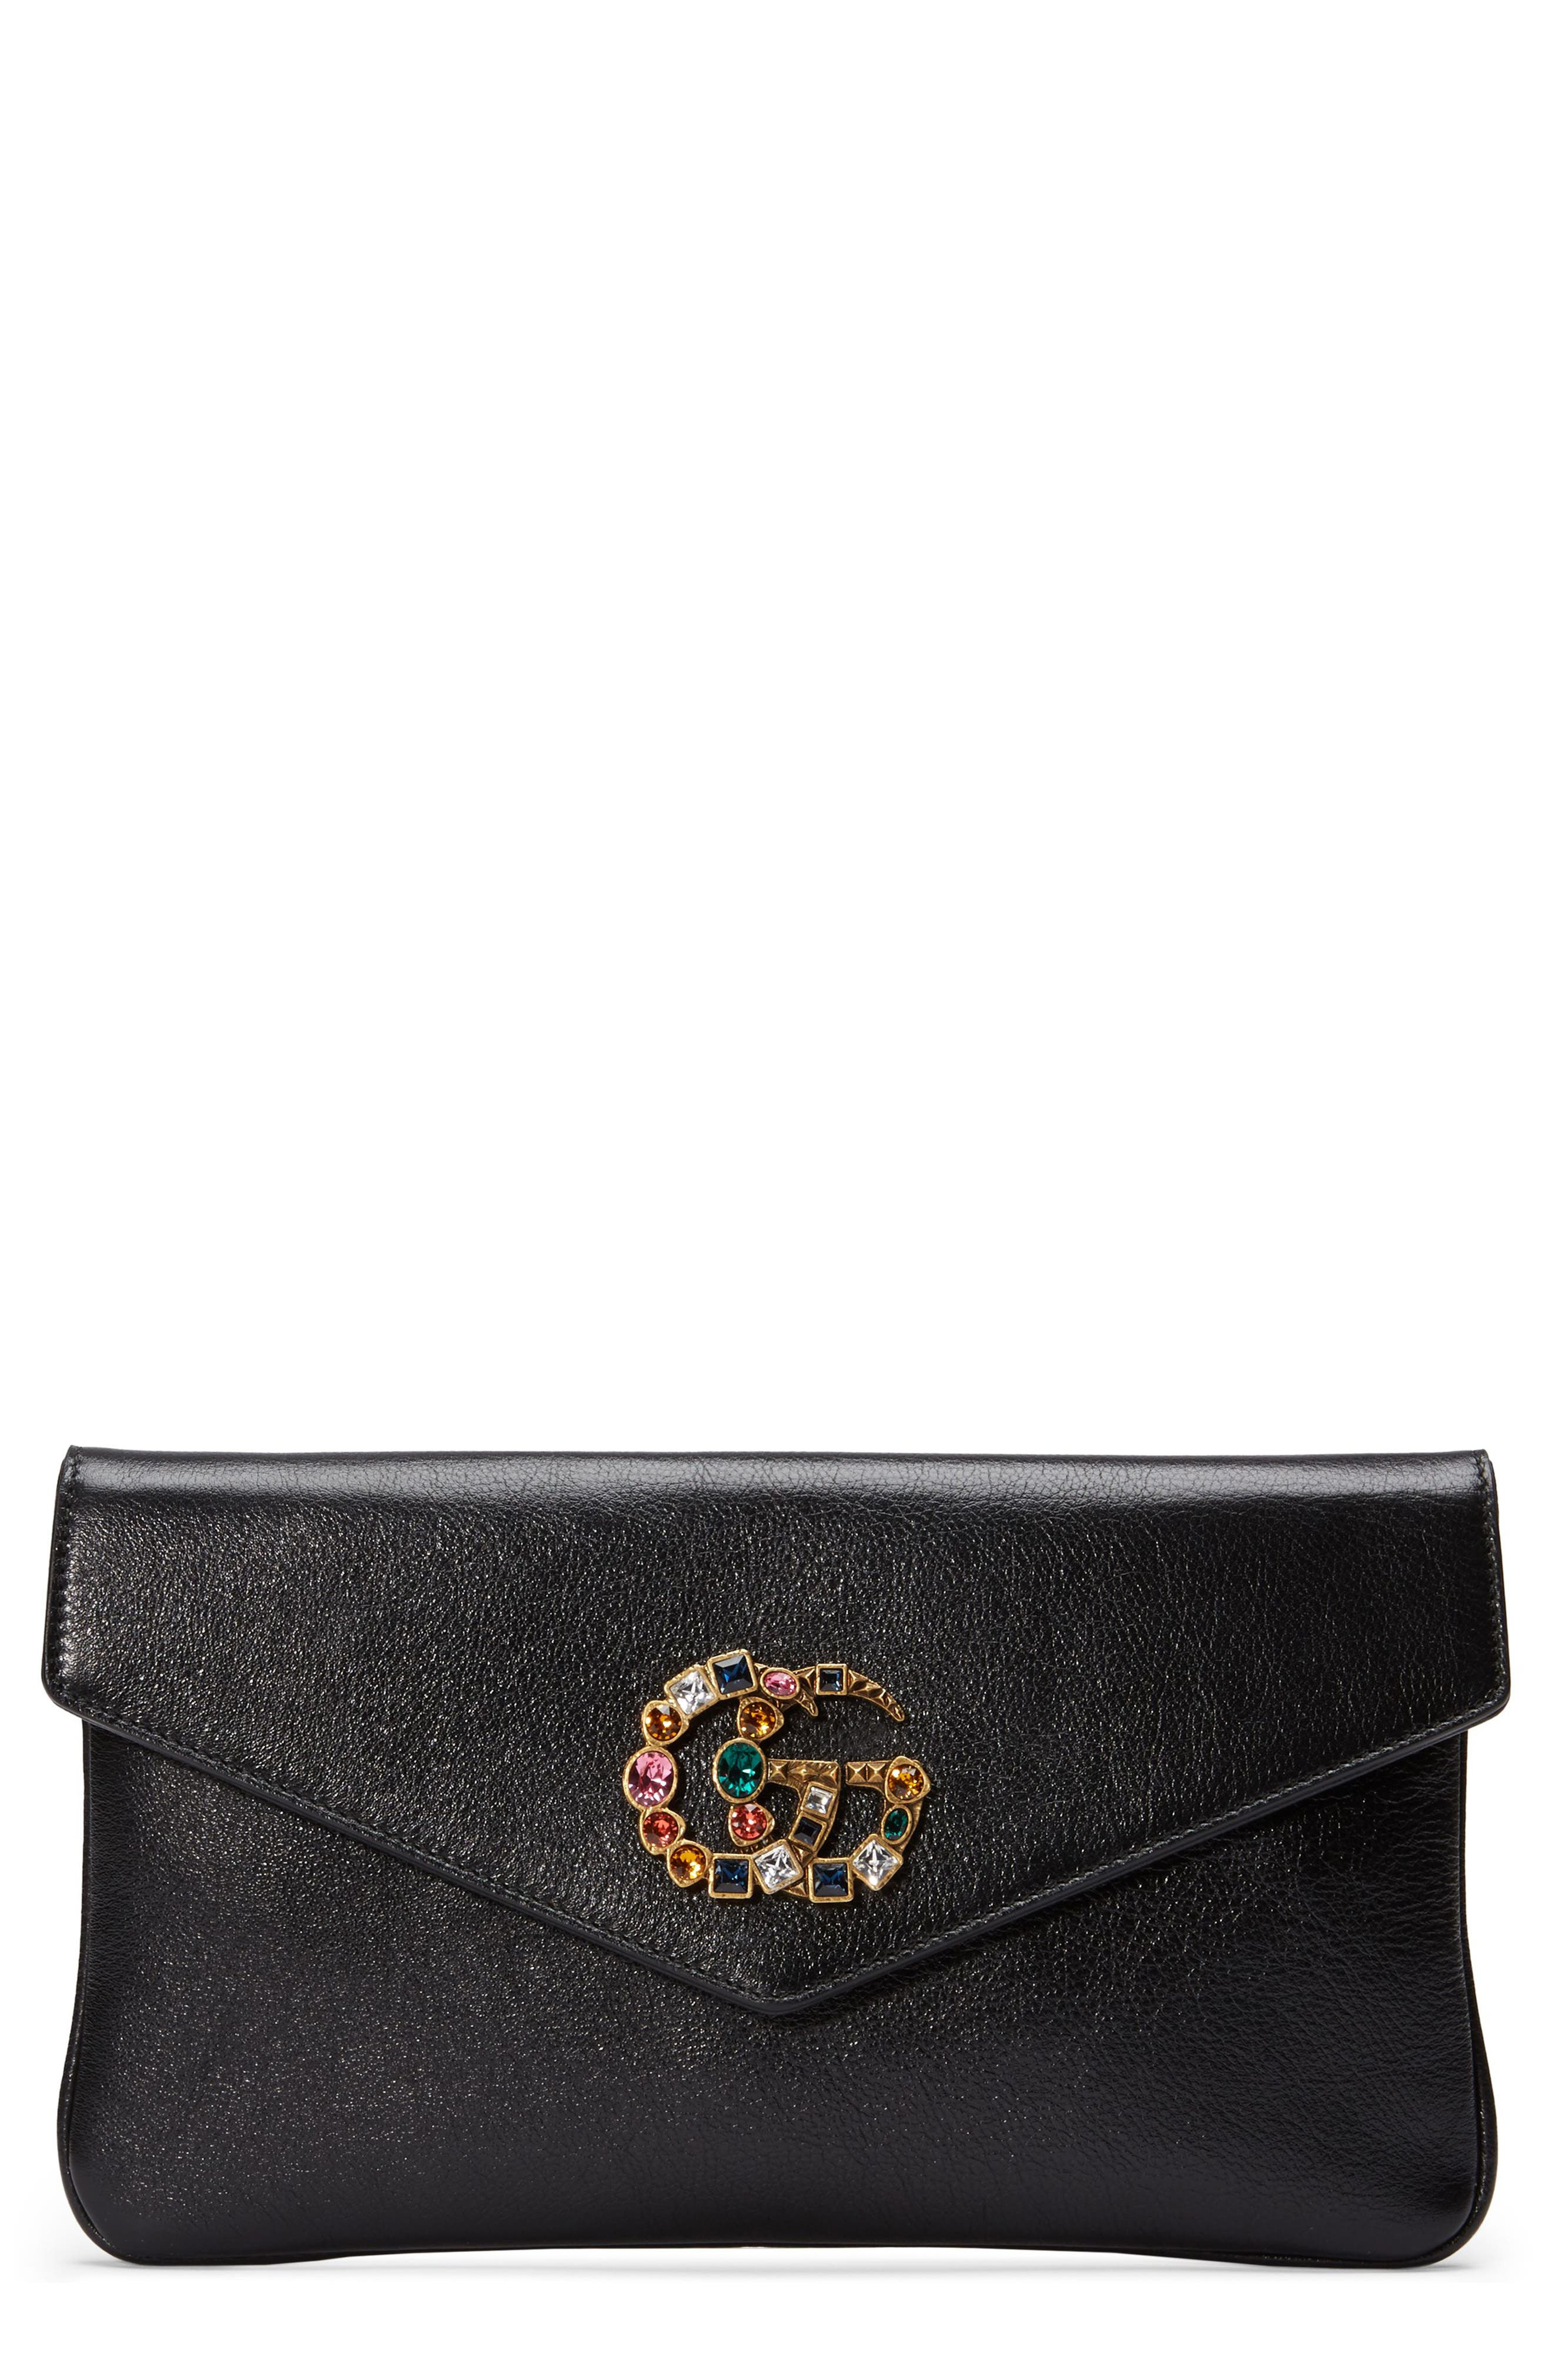 Broadway Crystal GG Leather Envelope Clutch,                         Main,                         color, Nero Multi